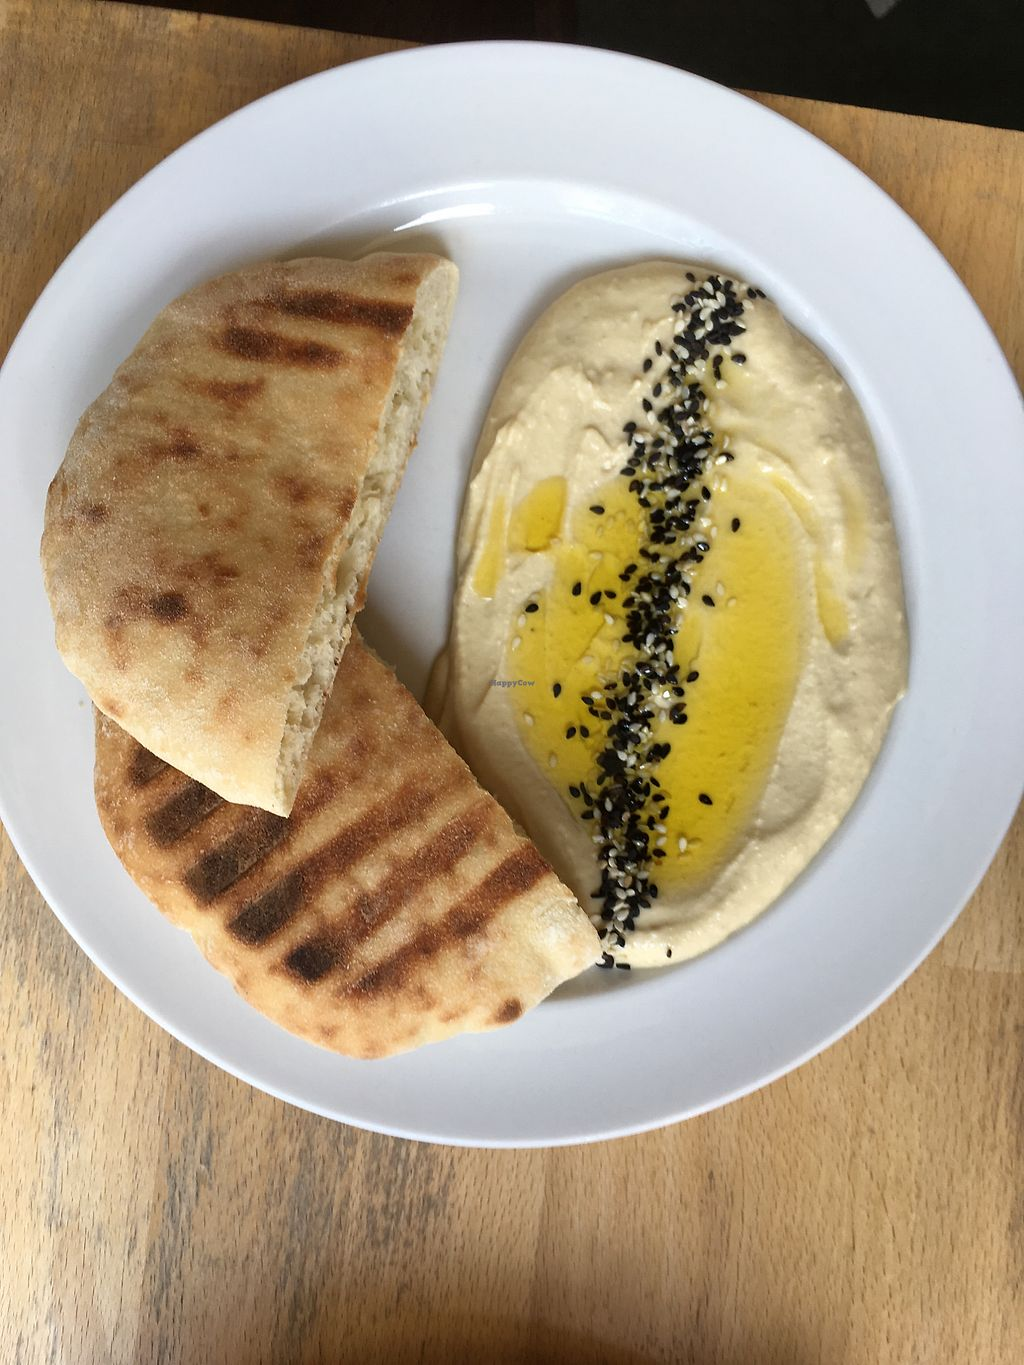 "Photo of Mamacoffee  by <a href=""/members/profile/CammK"">CammK</a> <br/>Hummus + pita <br/> July 23, 2017  - <a href='/contact/abuse/image/53346/283708'>Report</a>"